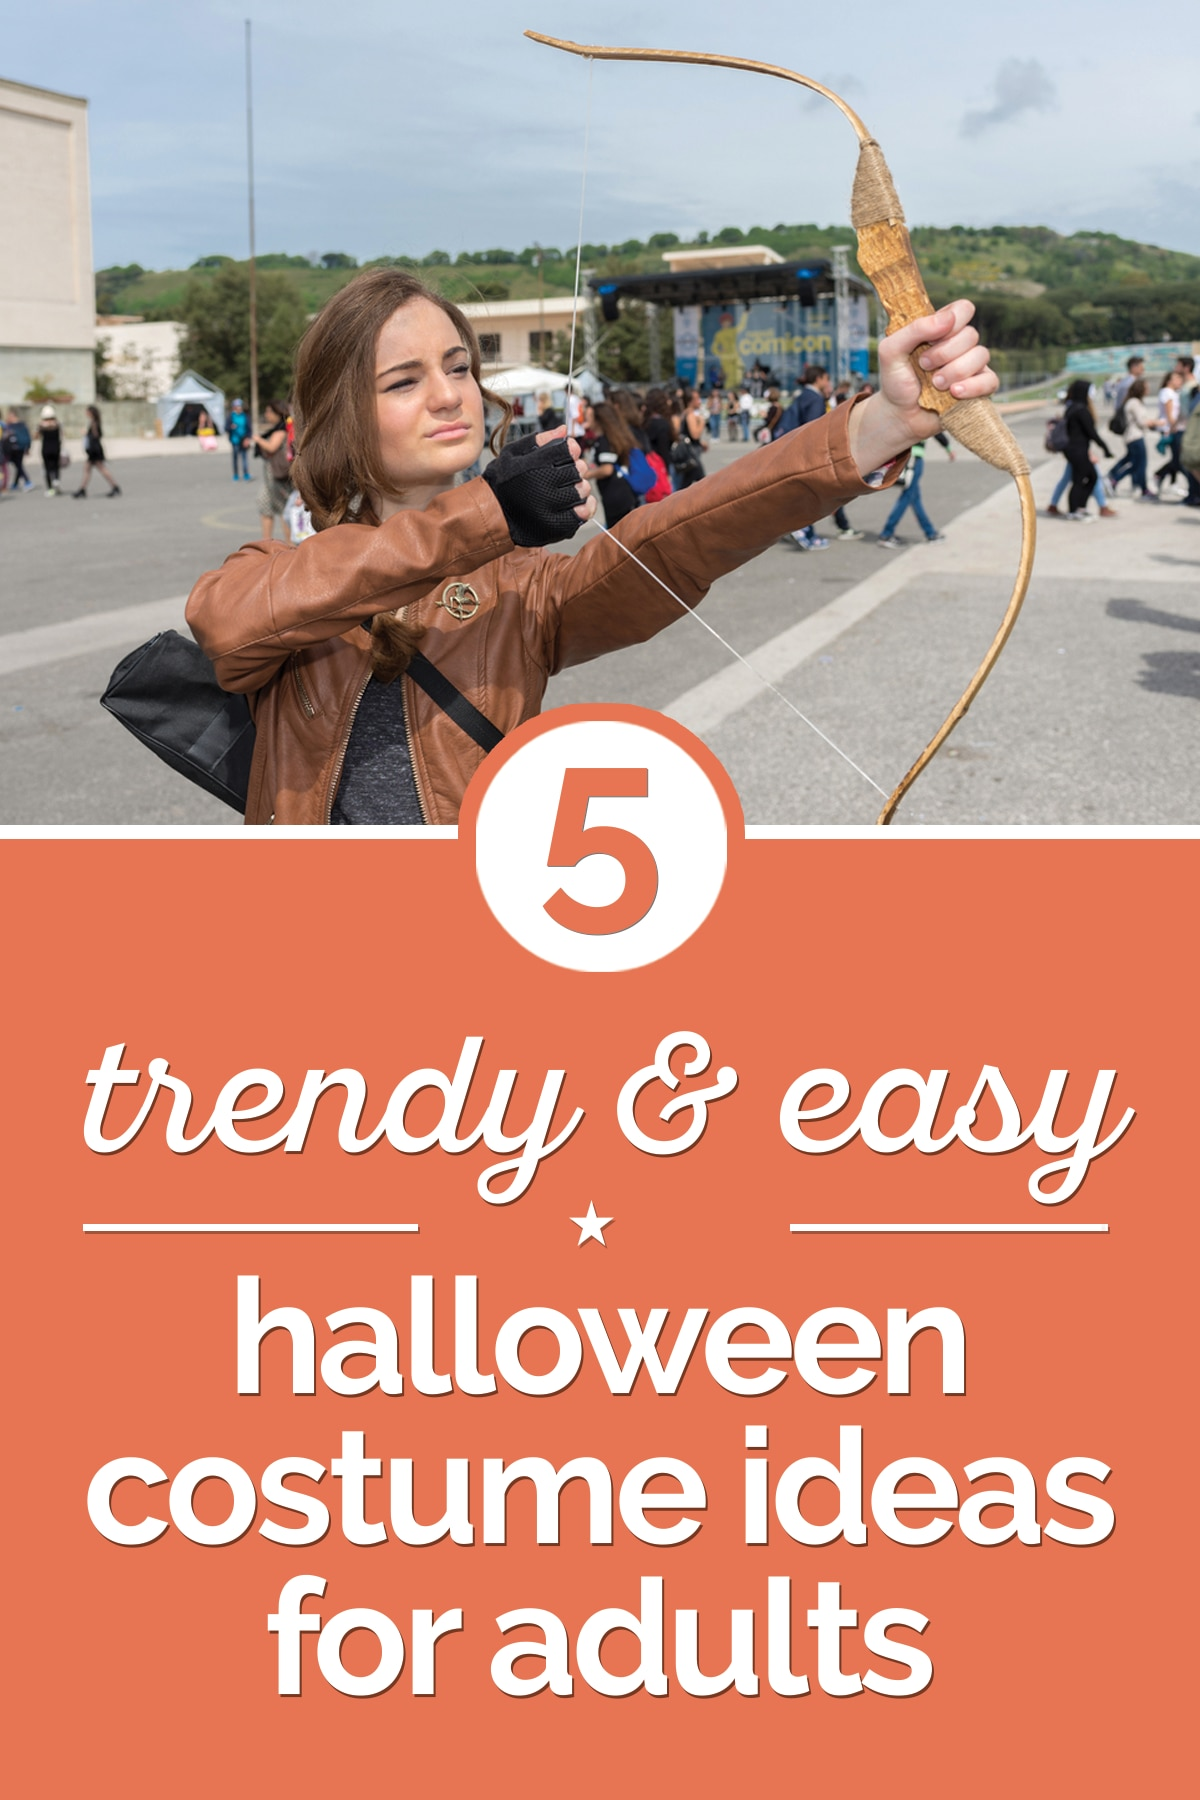 5 trendy easy halloween costume ideas for adults thegoodstuff 5 trendy easy halloween costume ideas for adults thegoodstuff solutioingenieria Gallery